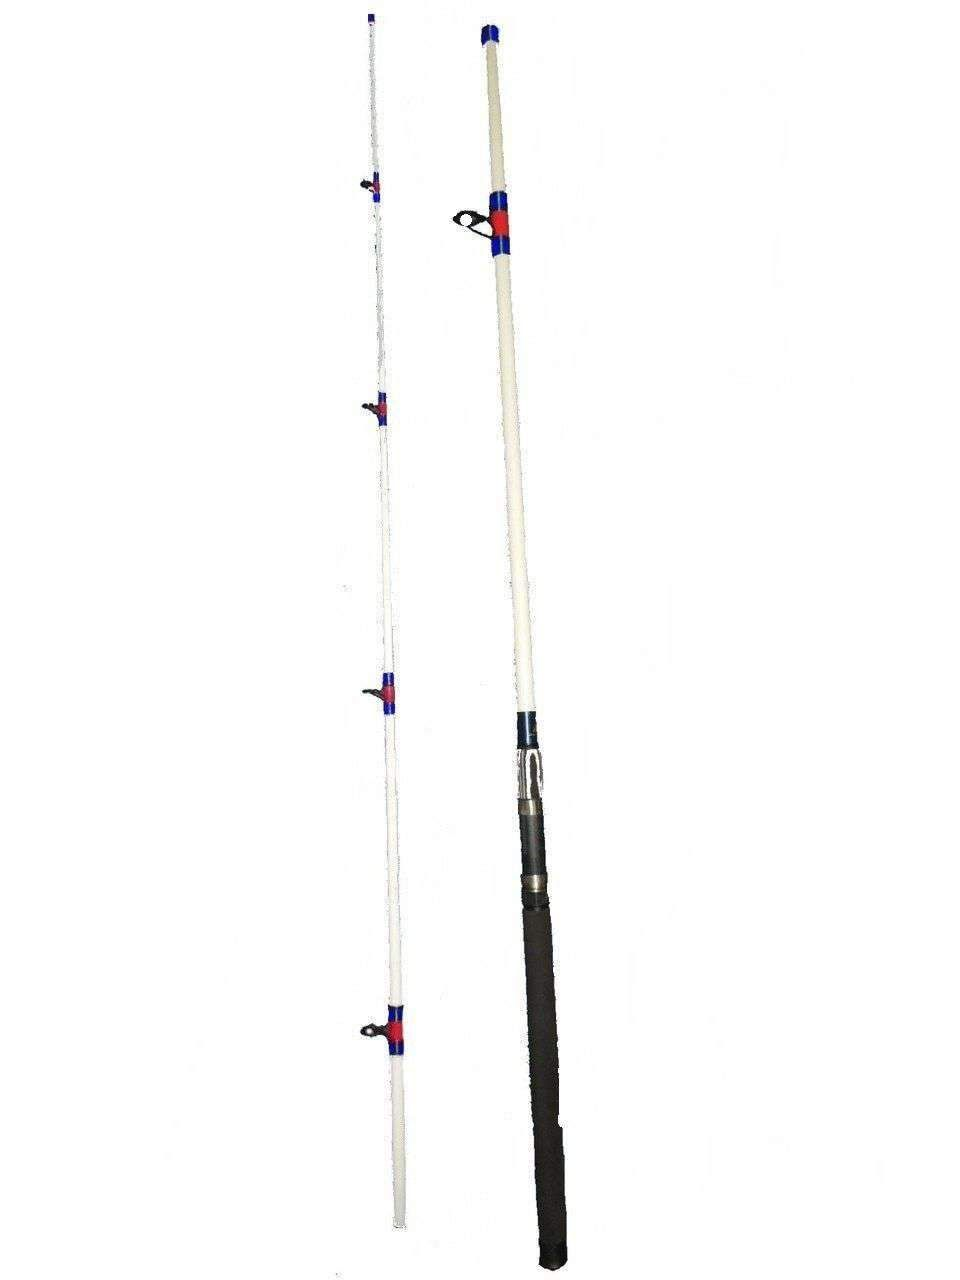 15 30 Lb 10 Ft Surf Rod 2pc Saltwater Fishing White Beast With Images Saltwater Fishing